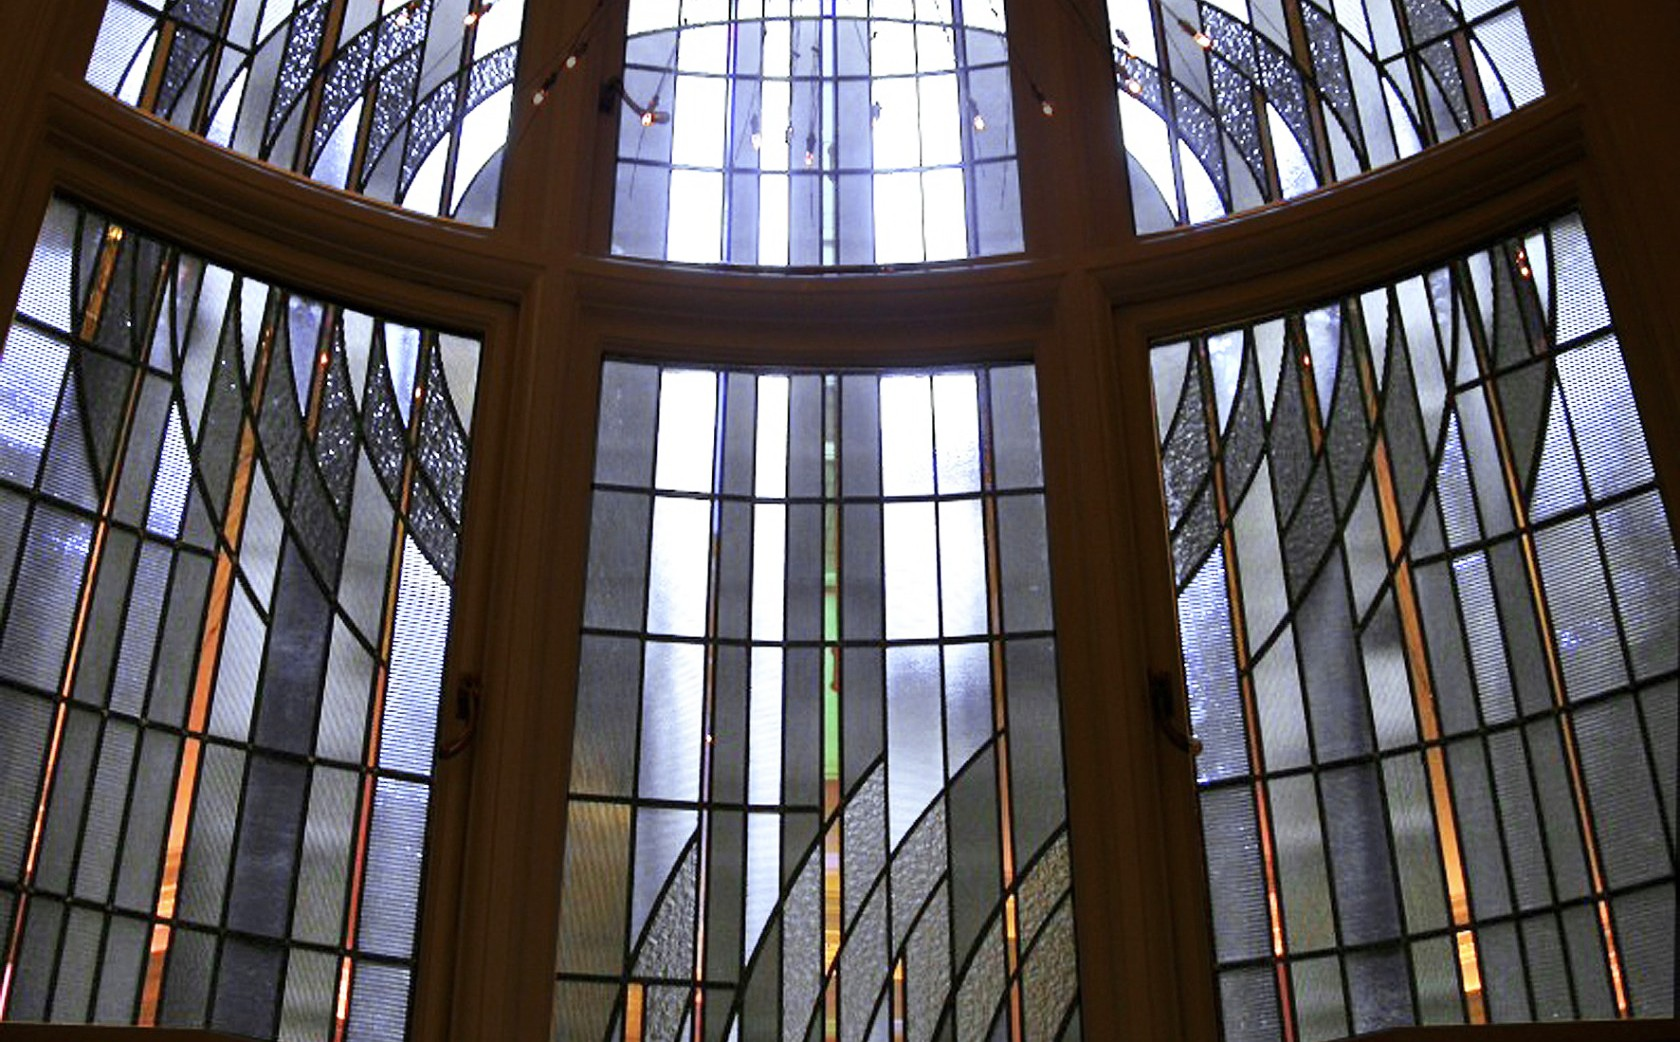 Art Deco Stained Glass Window to enhance light and screen view on light-well